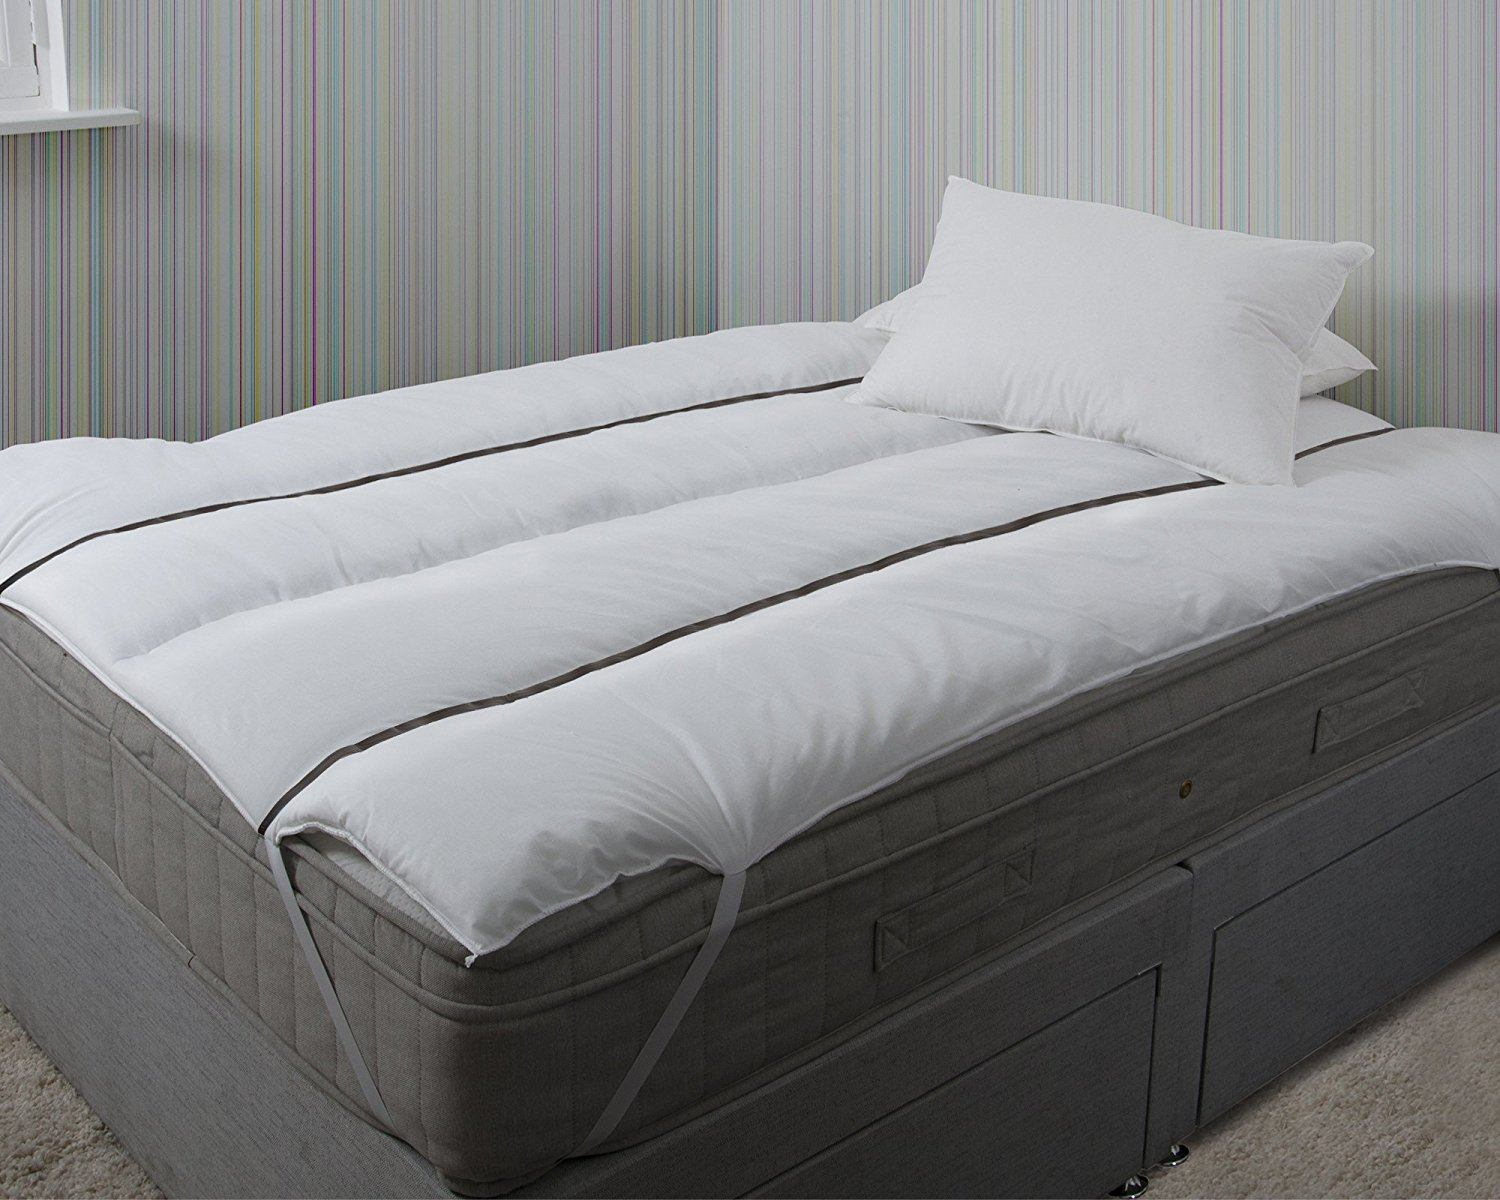 Bedding Direct UK - Luxury Magnetic Pain Relief Polycotton Mattress Reviver